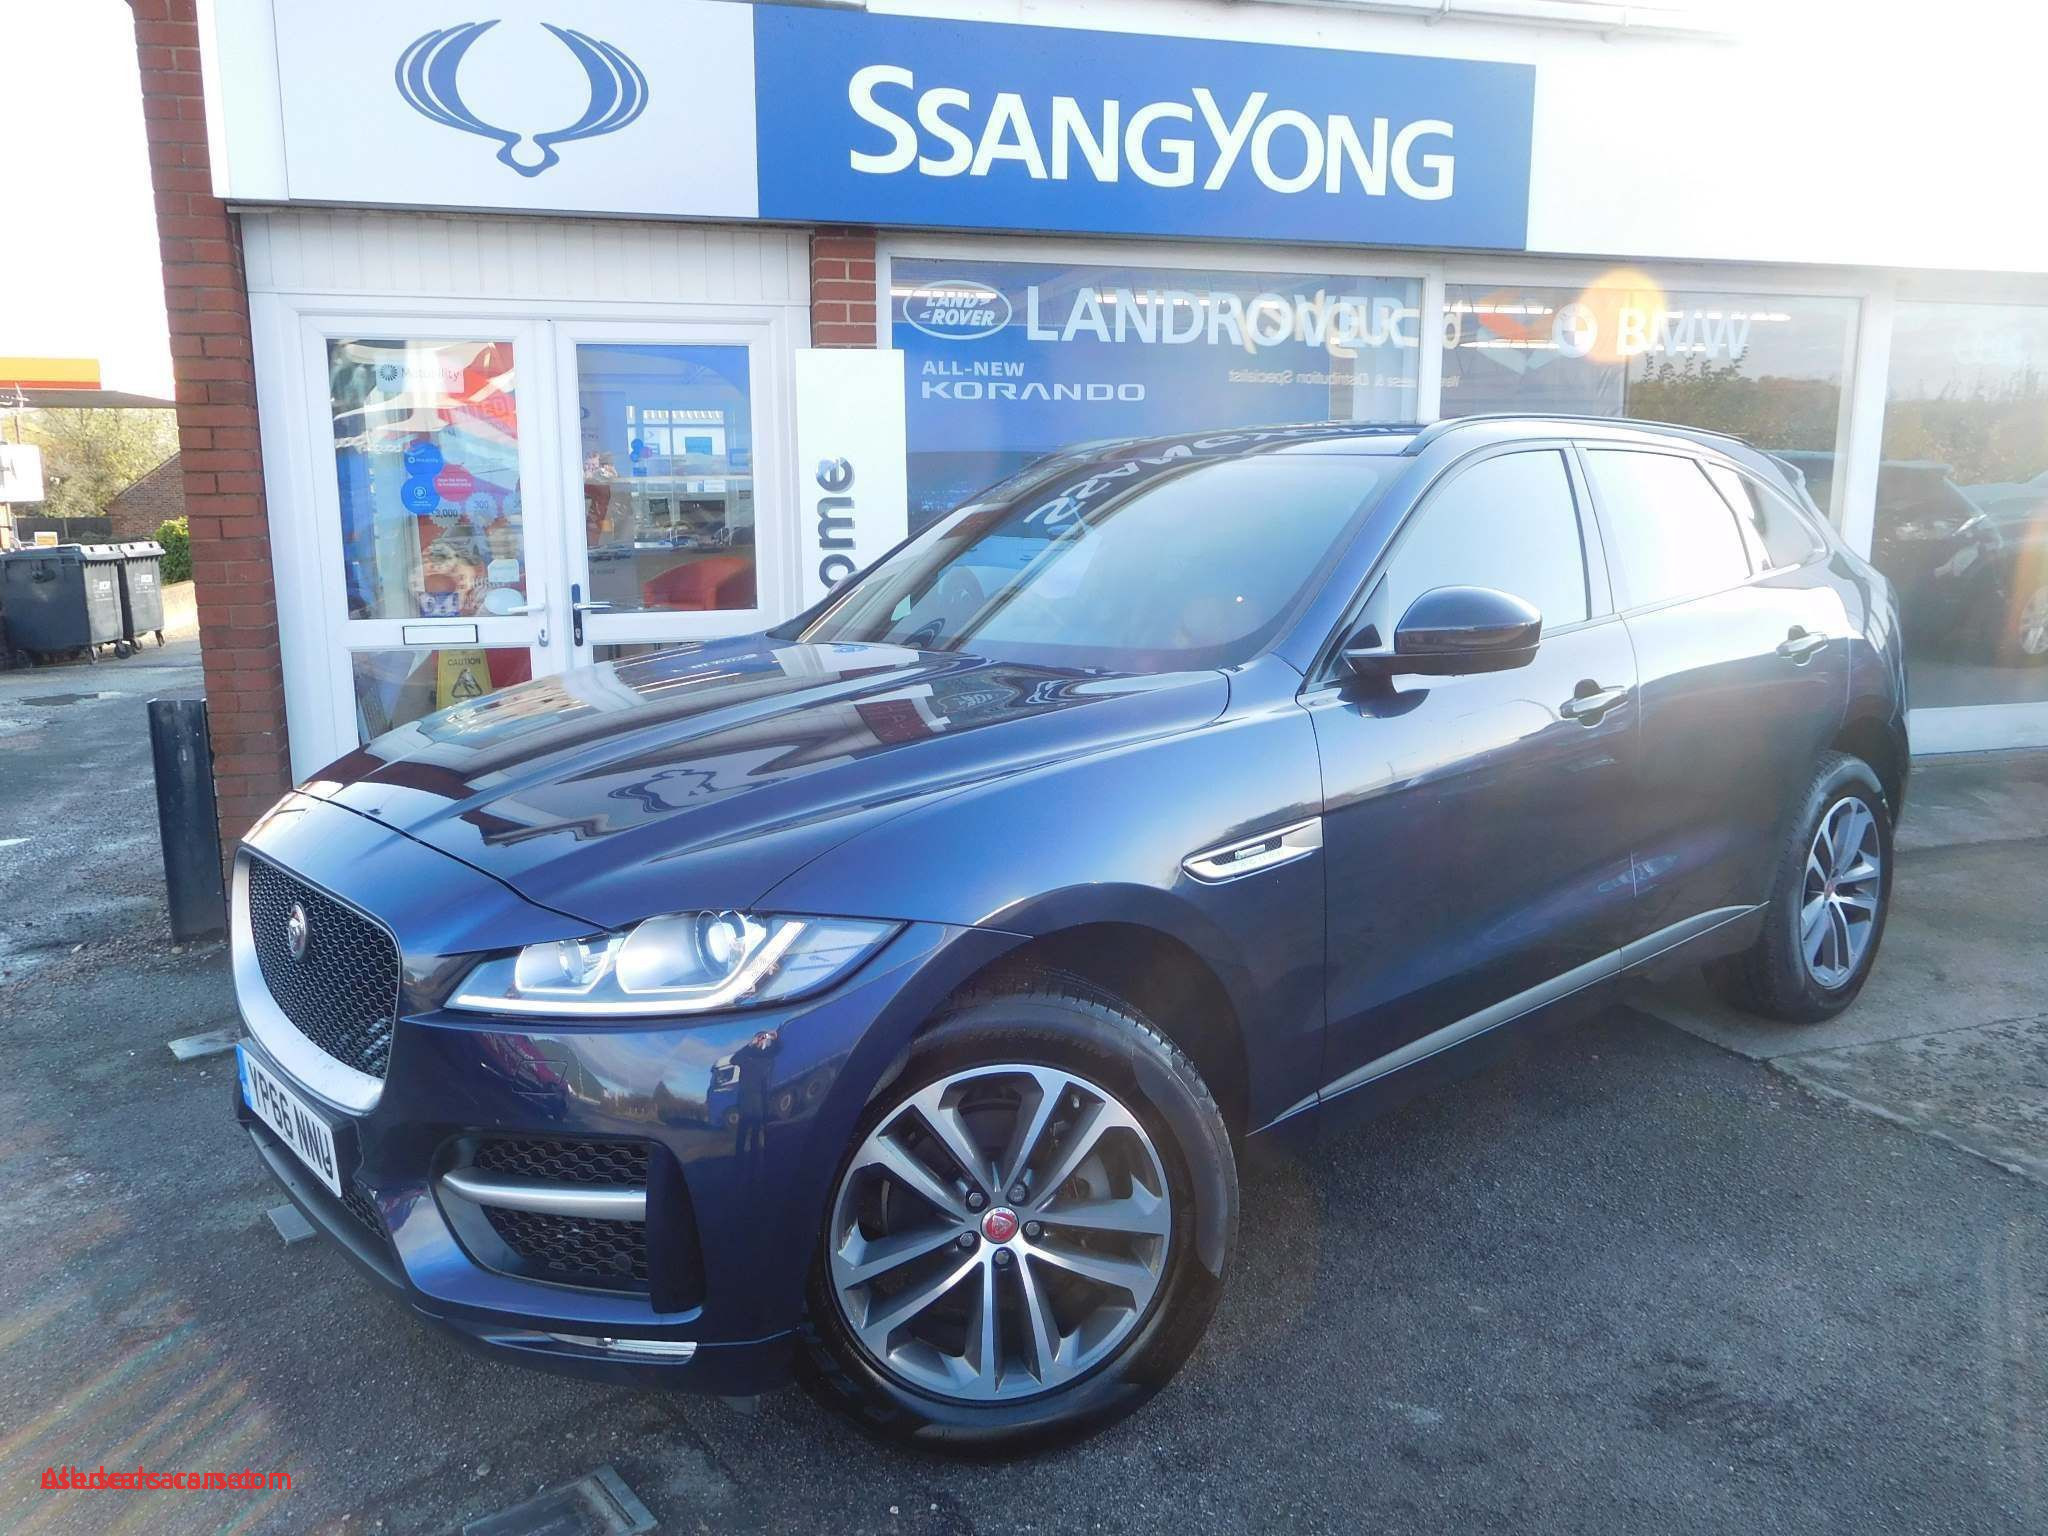 Where Used Cars for Sale Lovely Jaguar Suv for Sale Beautiful Used Jaguar F Pace Suv 2 0d R